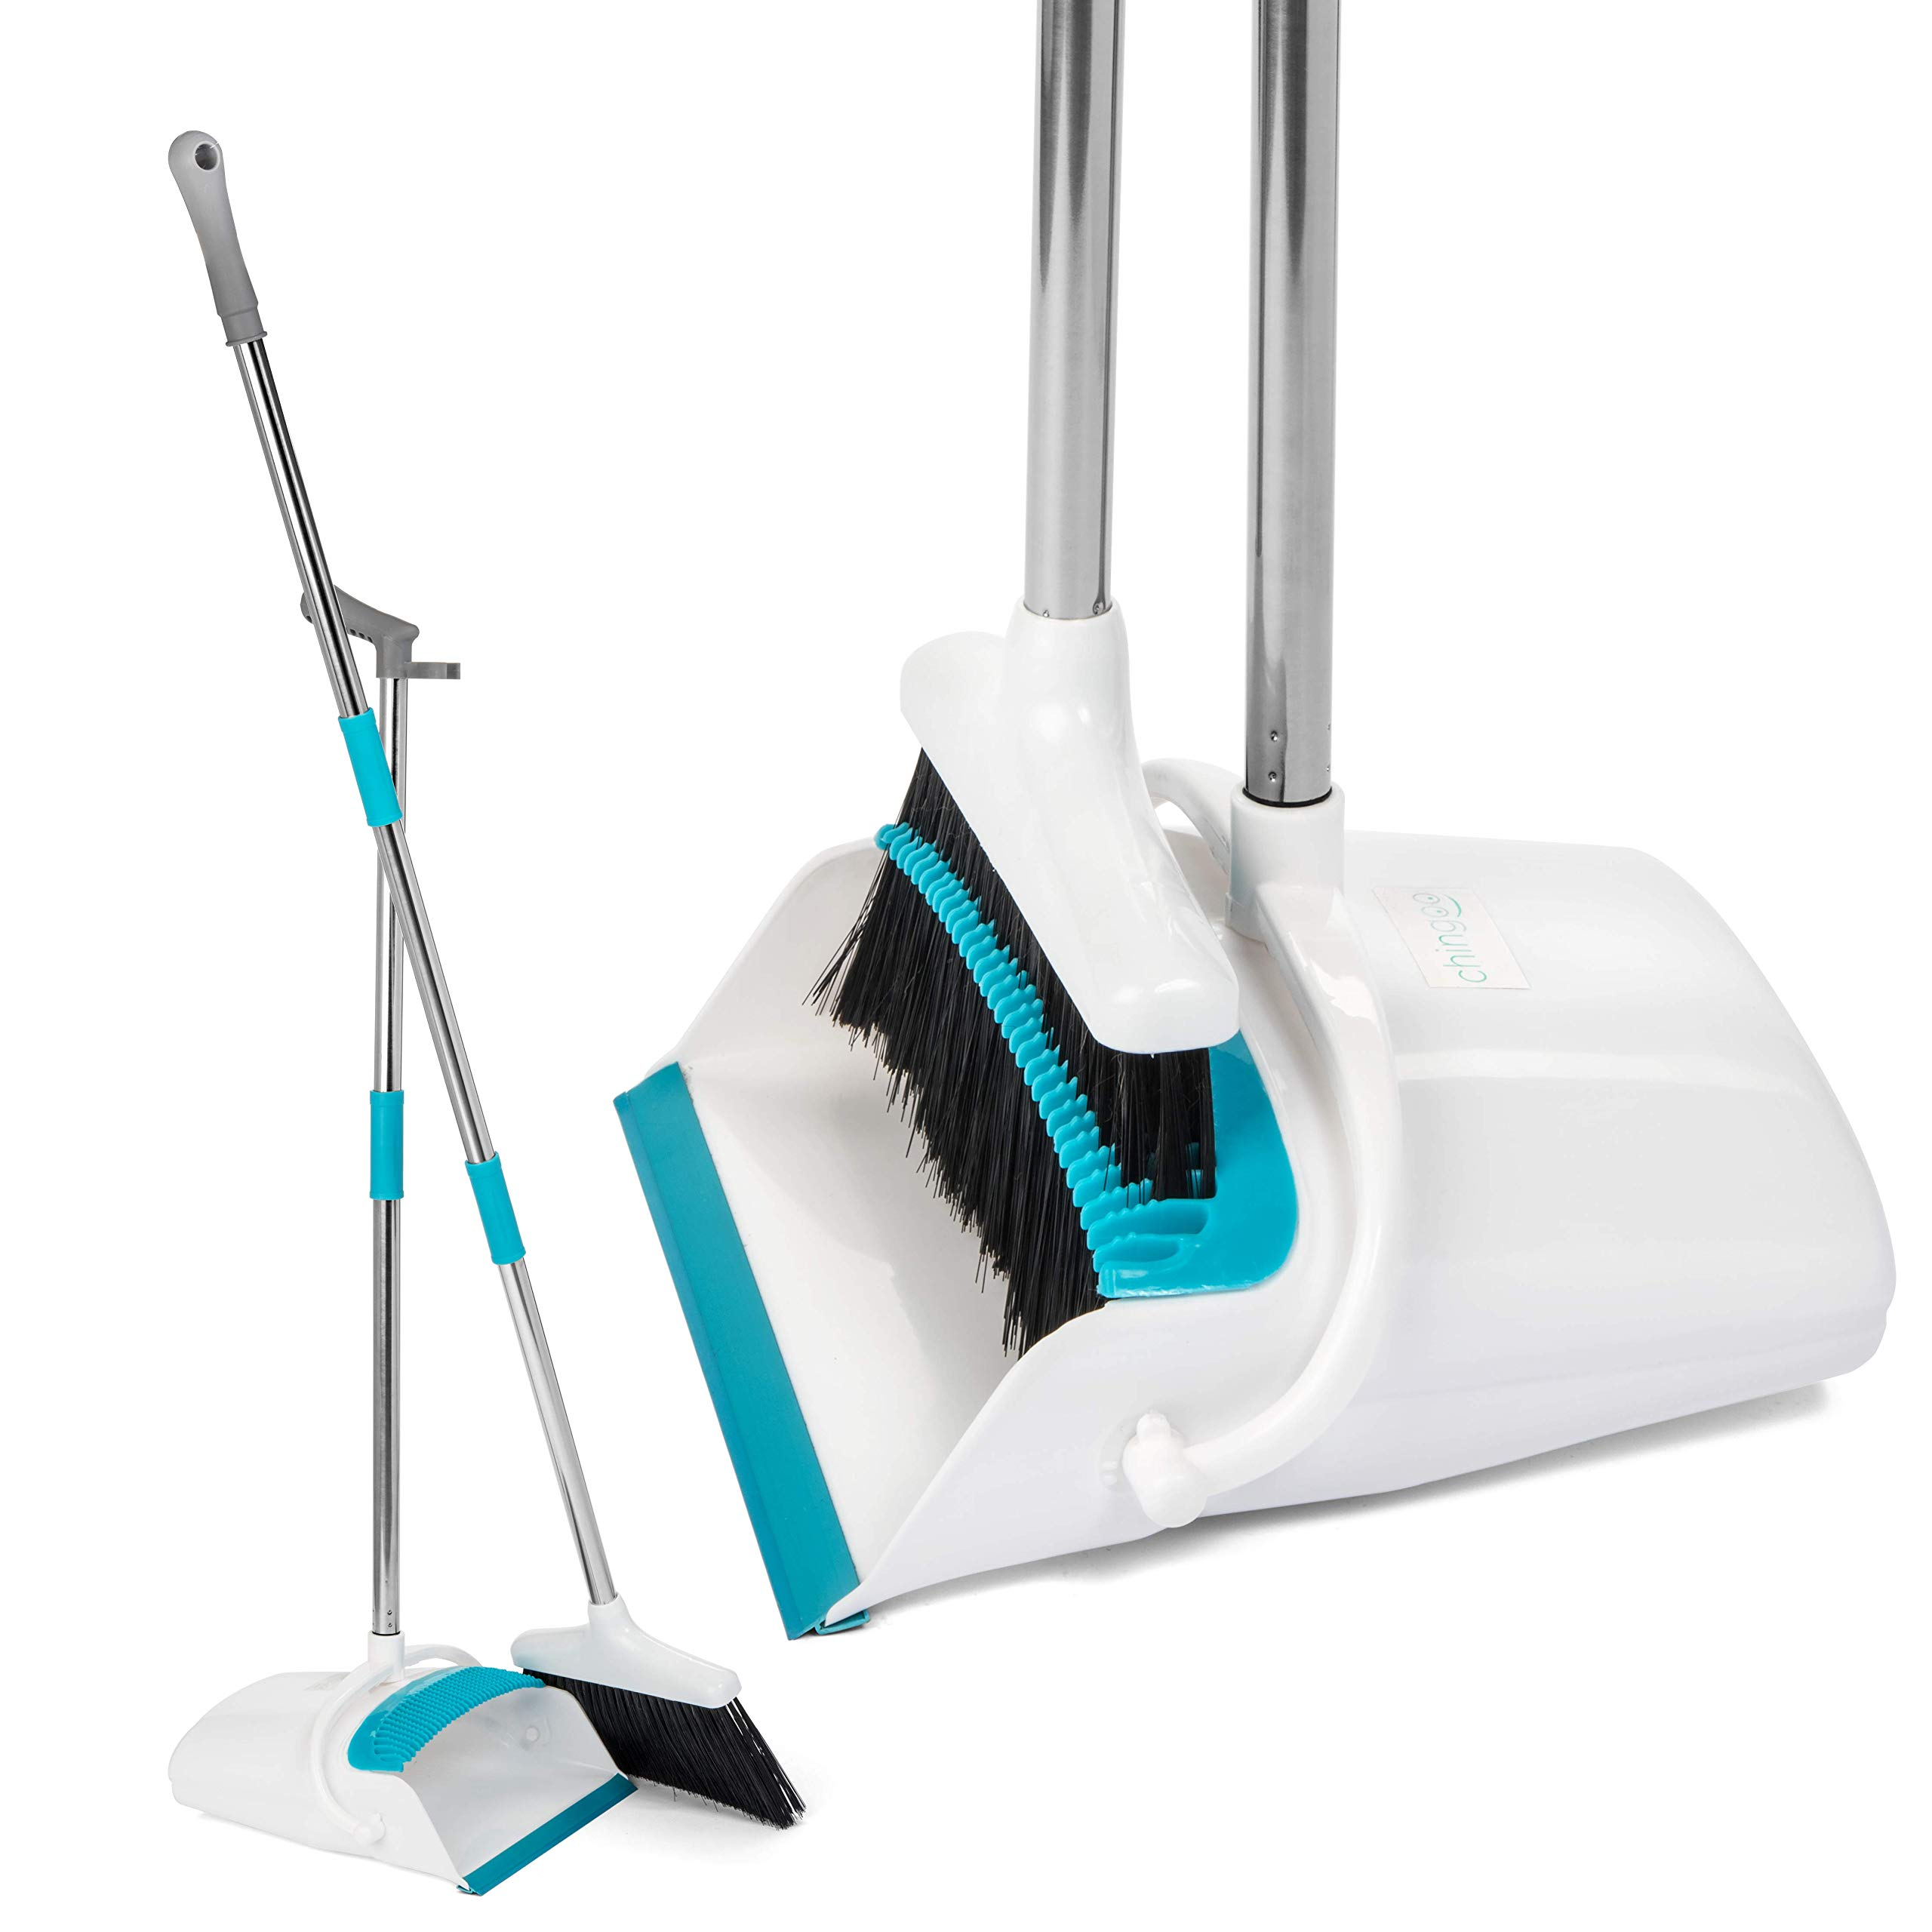 Broom and Dustpan Set by Chingoo - Custom Color Dust Pan with Long Handle, Bristle Combing Teeth and Angled Rubber Edge for Efficient Cleaning - Stop Back Pain with Optional Broom Handle Extension